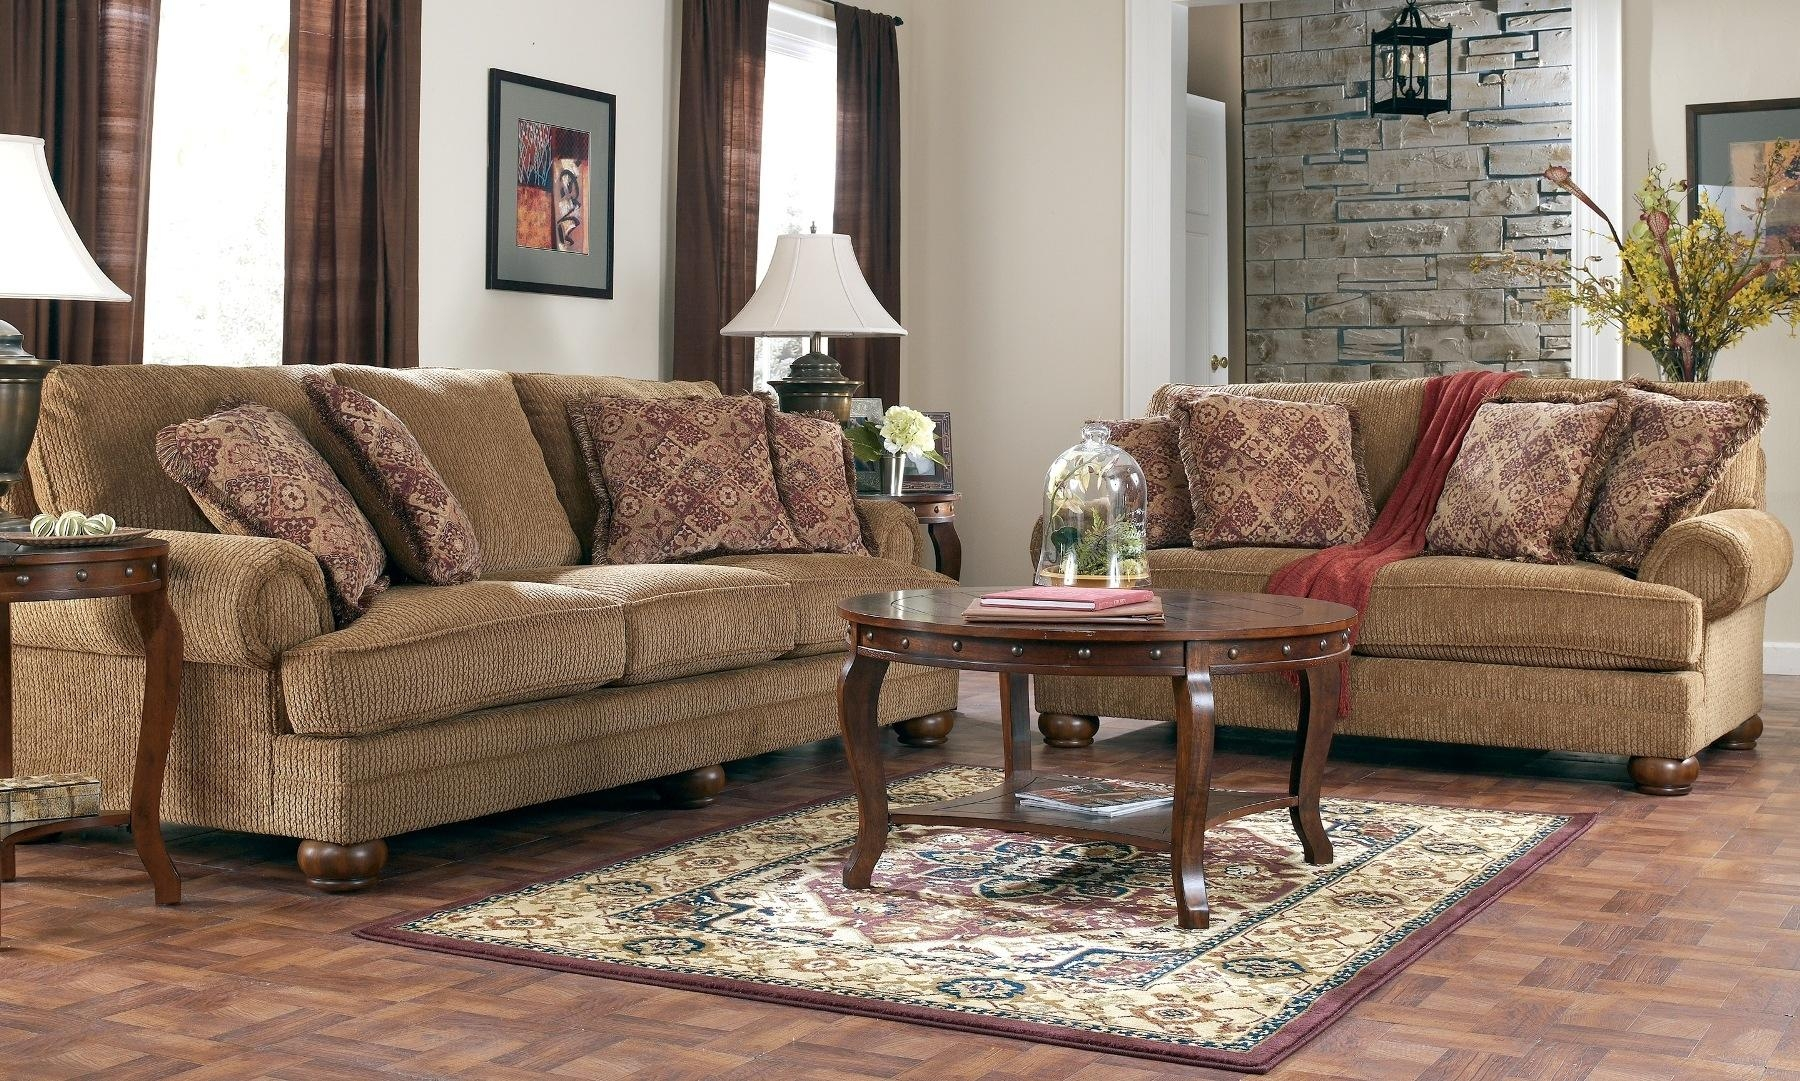 Furniture: Broyhill Sofas | Broyhill Allison Sofa | Broyhill Pertaining To Broyhill Mckinney Sofas (Image 15 of 20)